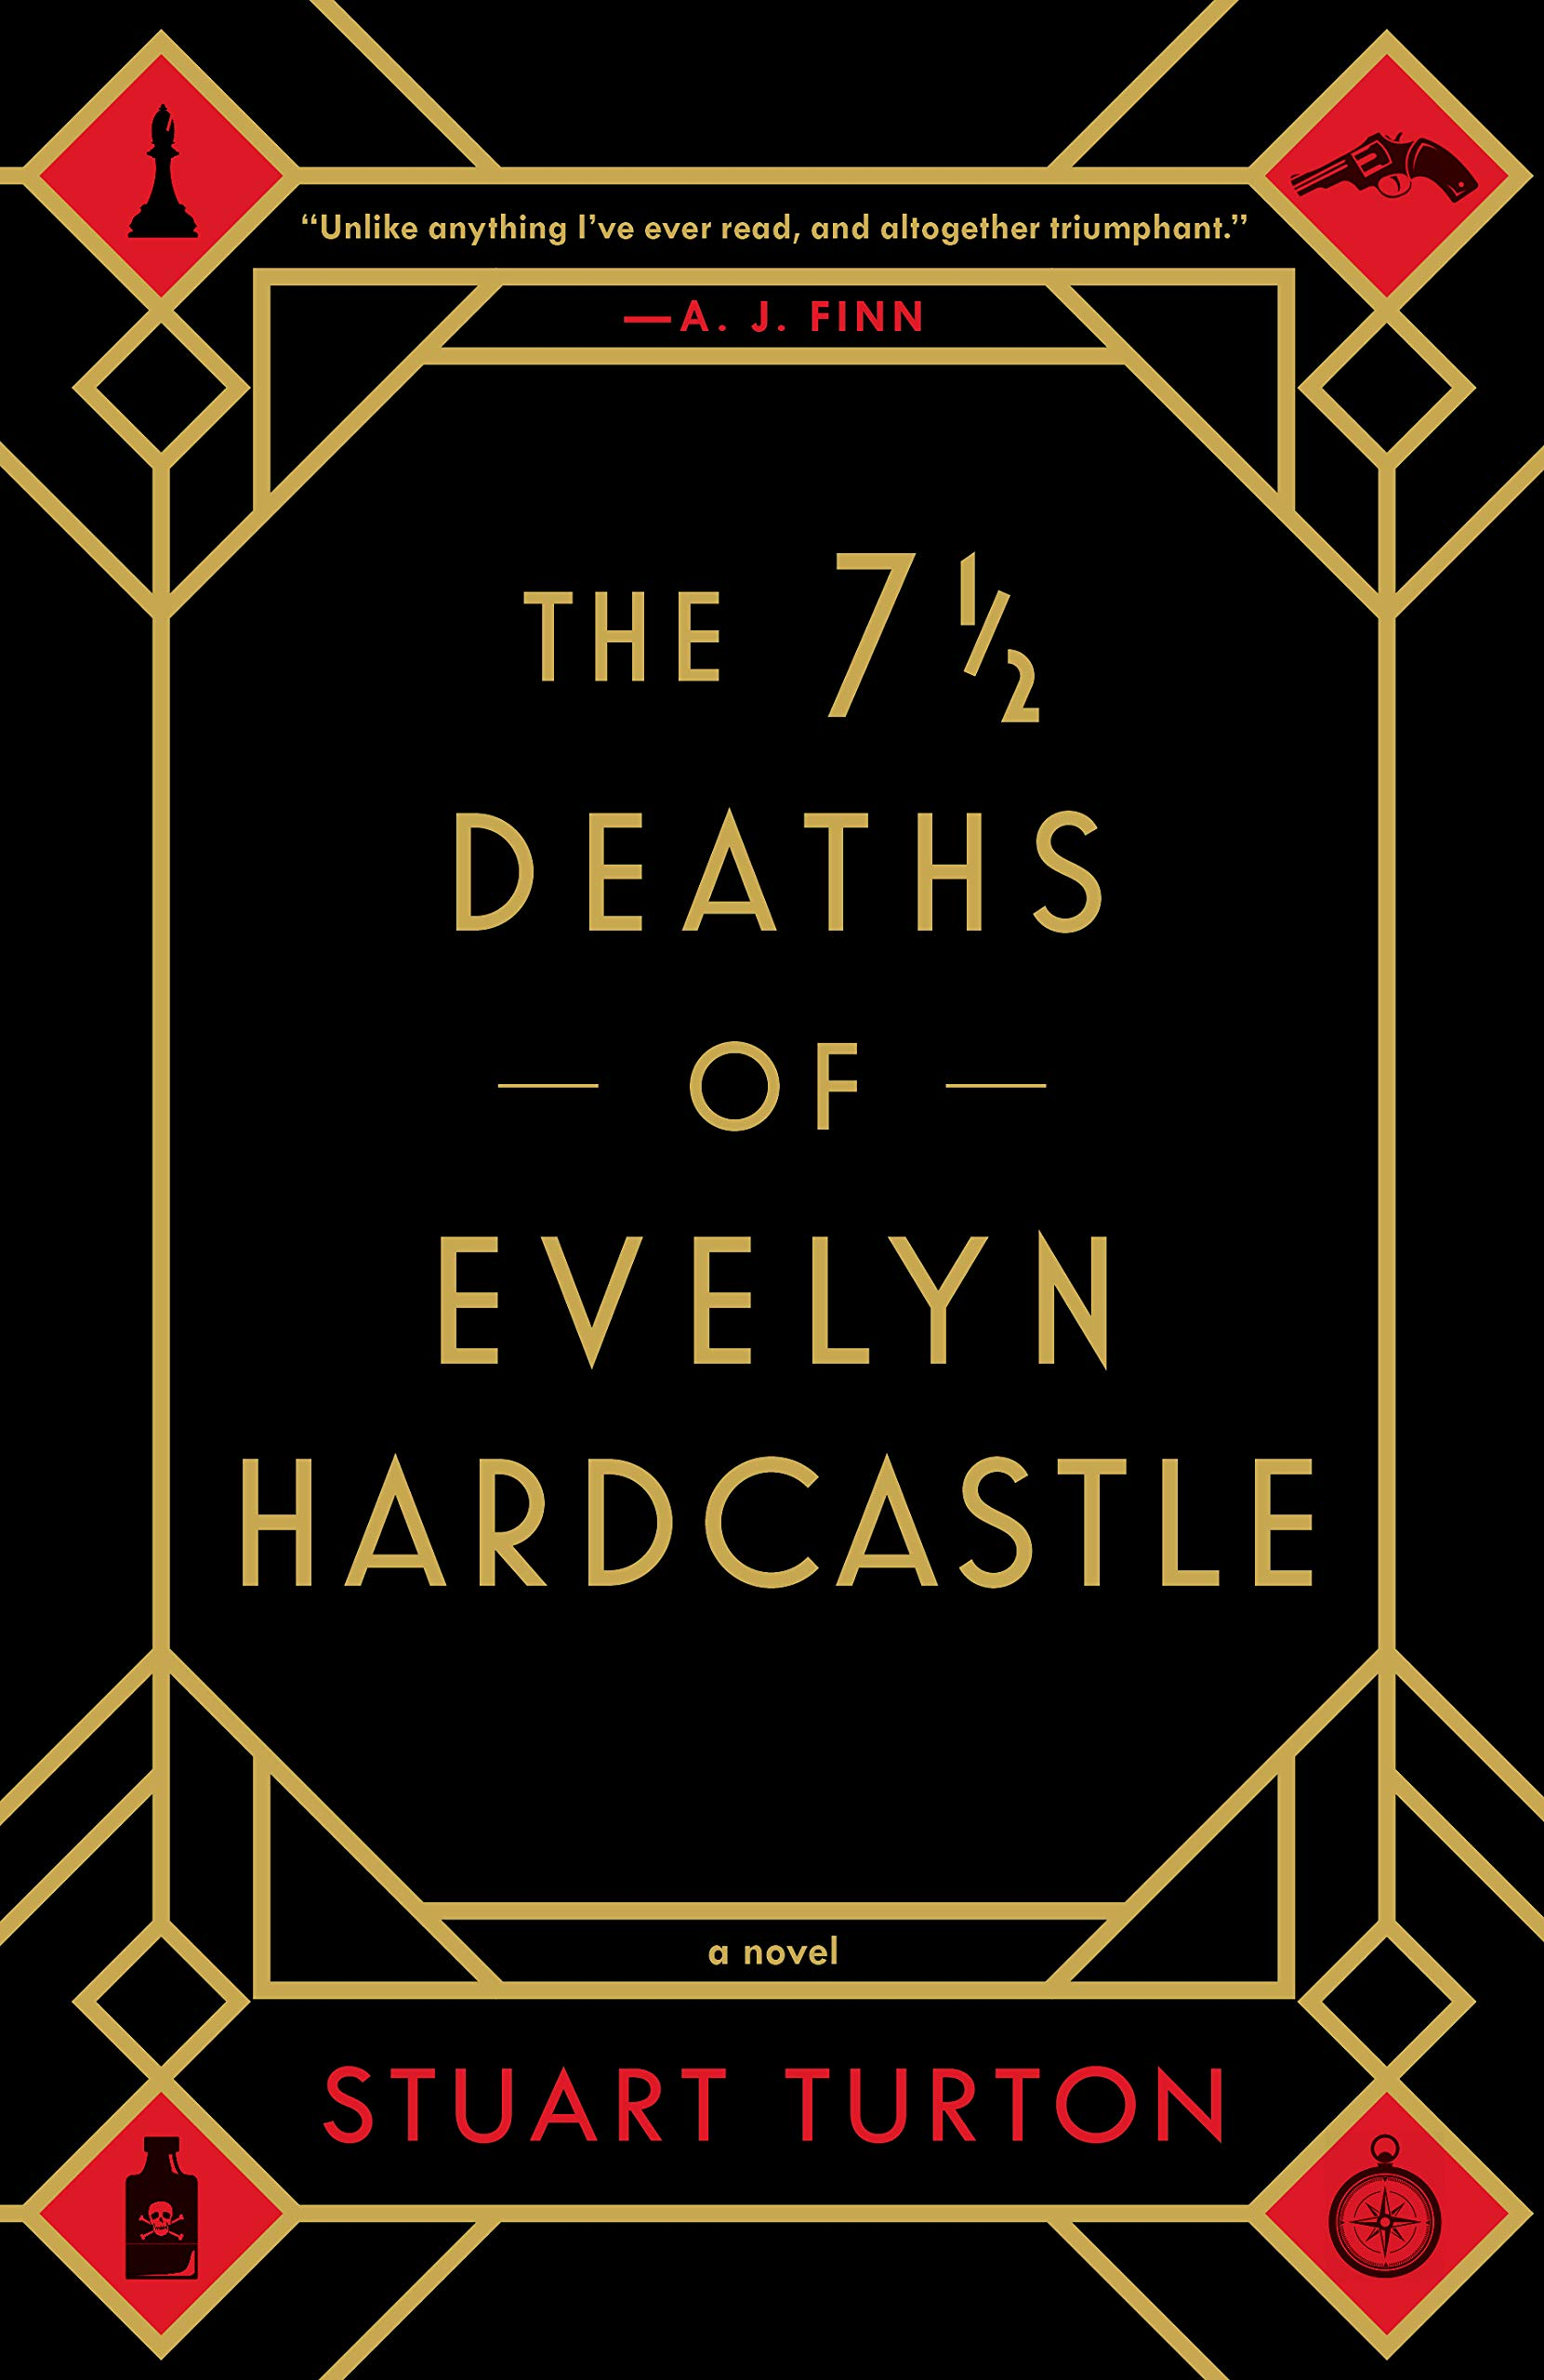 The 7 1/2 Deaths of Evelyn Hardcastle Fall TBR List